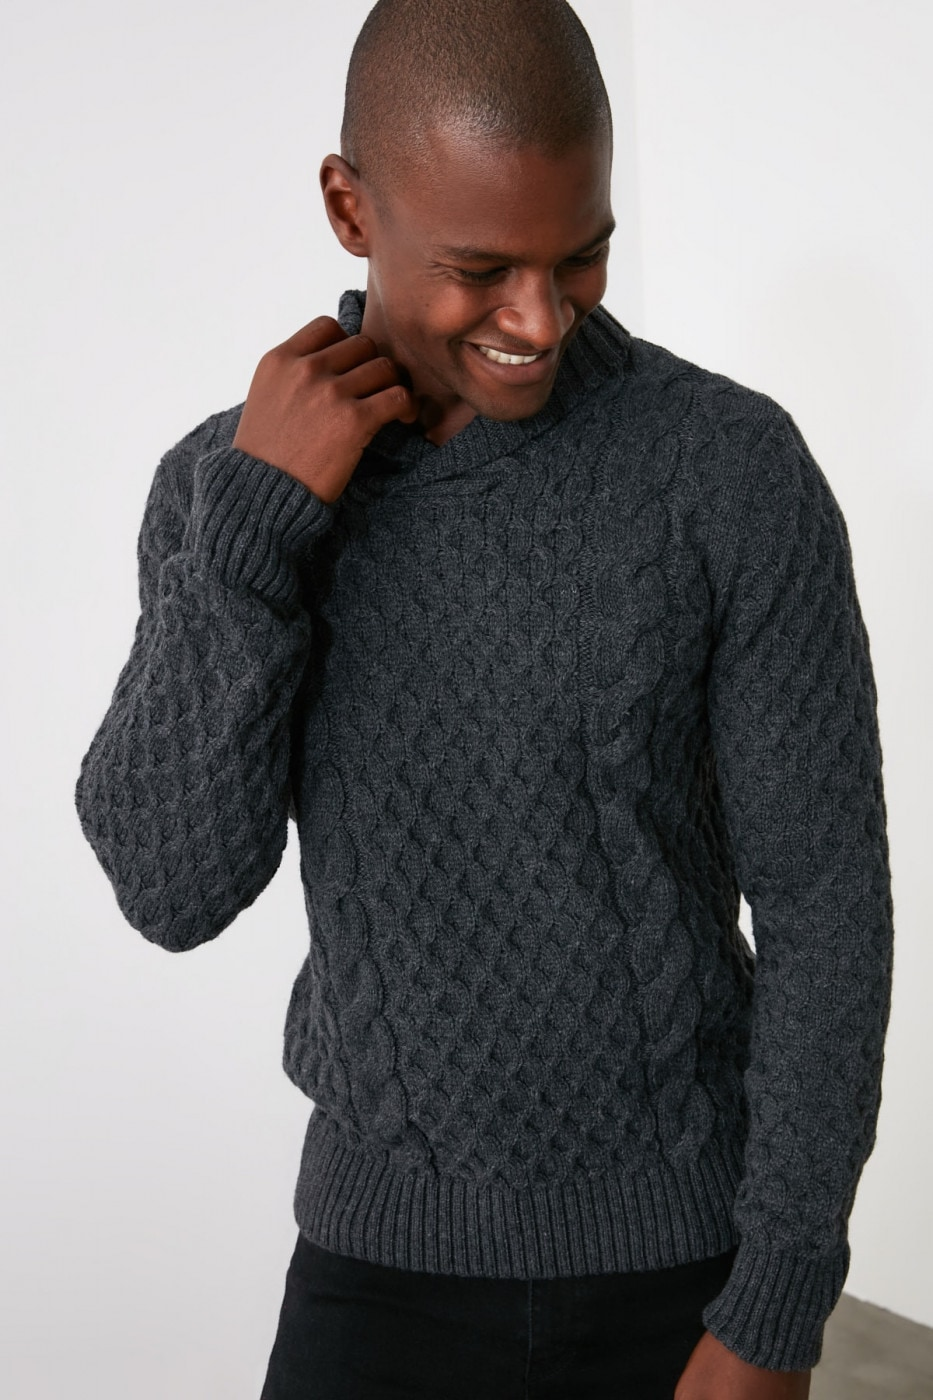 Trendyol Anthracite Men's Shawl Neck Hair Knitting Knit Knuckle Sweater